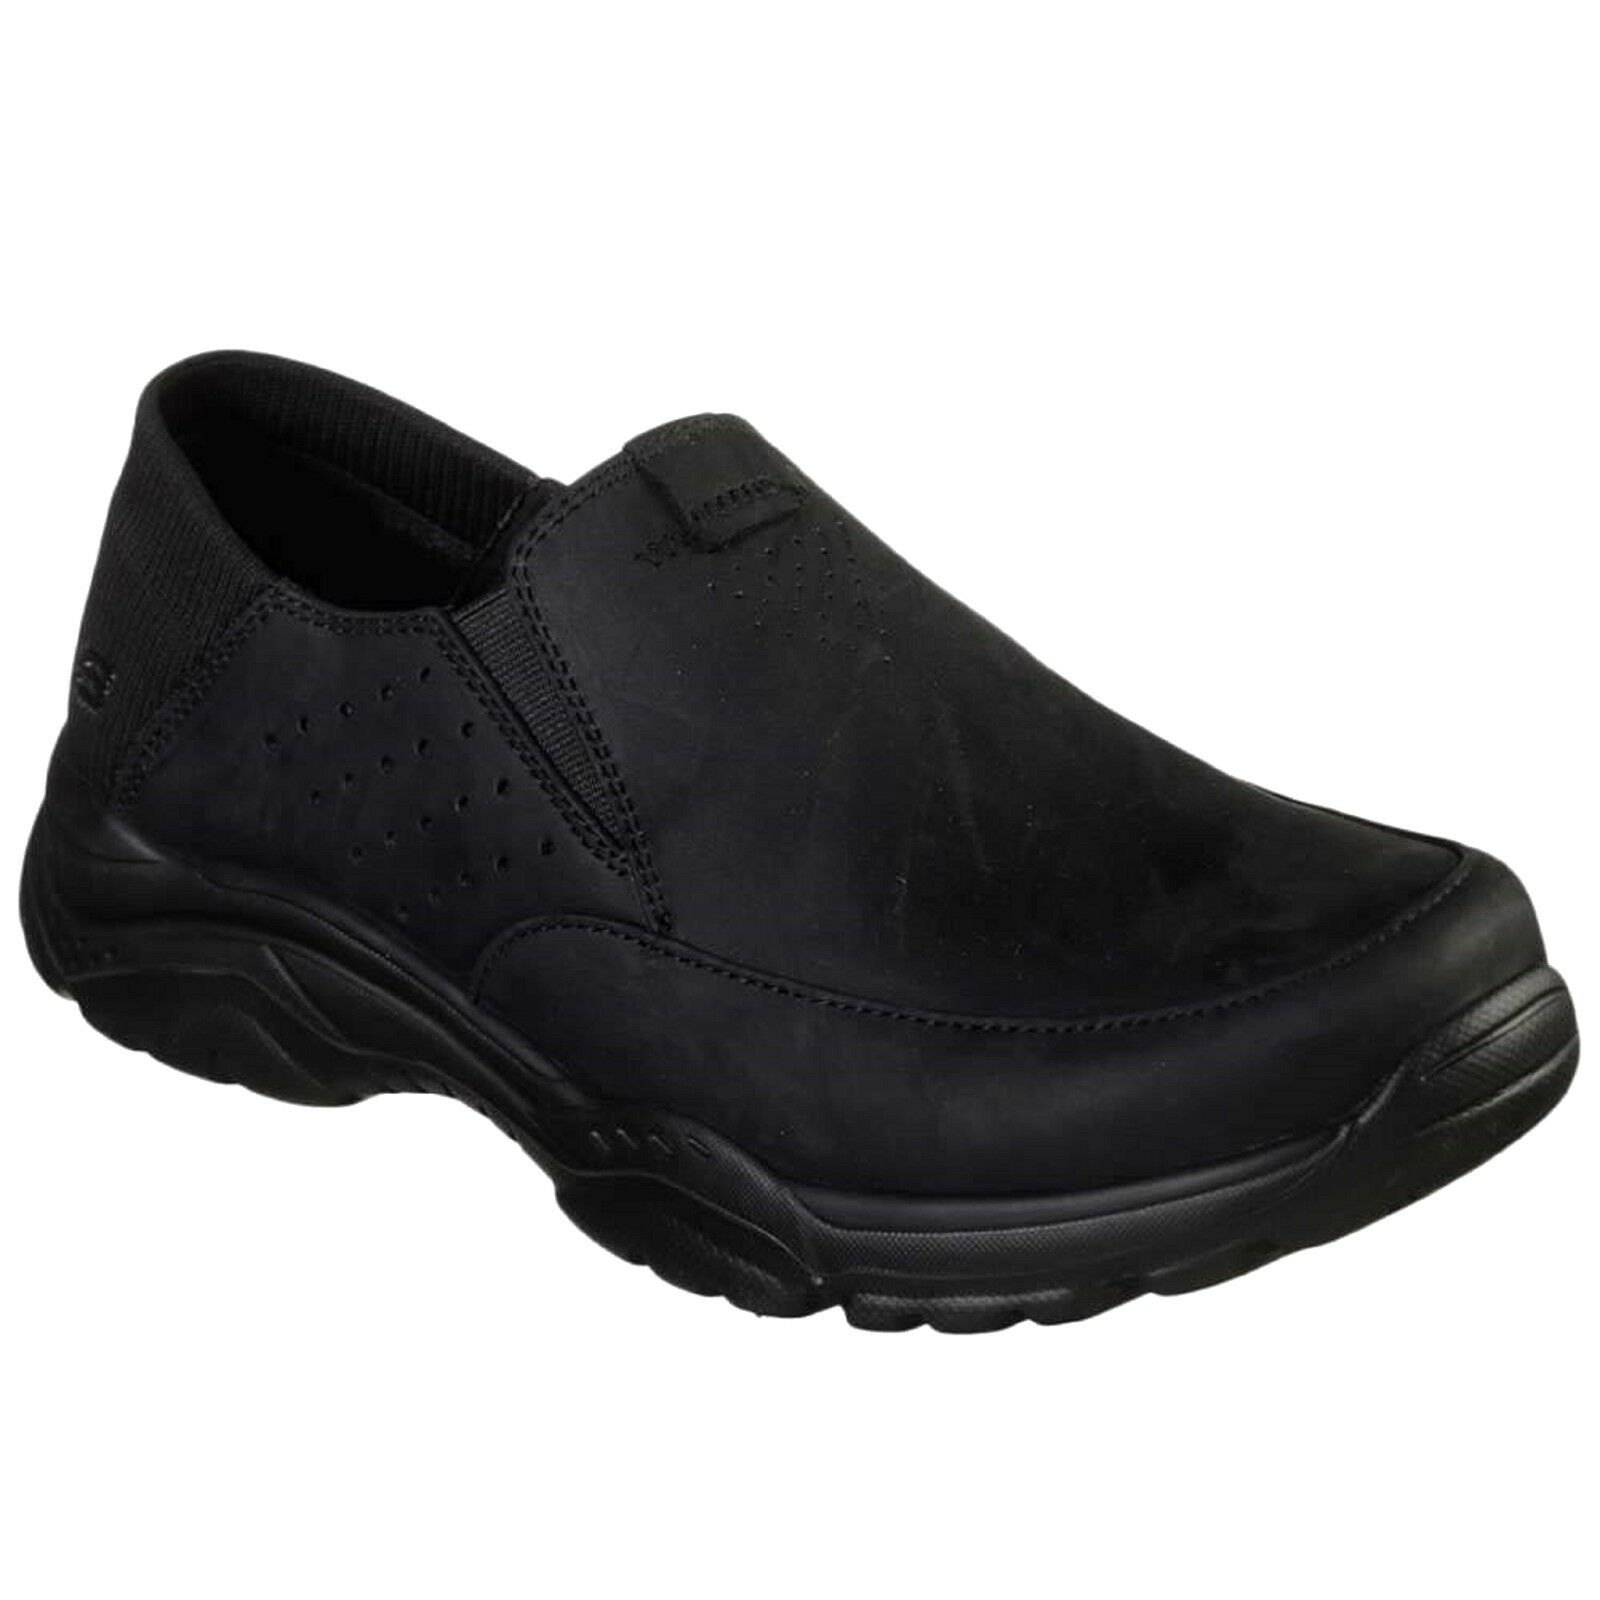 65719/BLK 65719/BLK 65719/BLK Skechers, Relaxed Fit Rovato Masego Uomo Slip On Loafers 7294a6